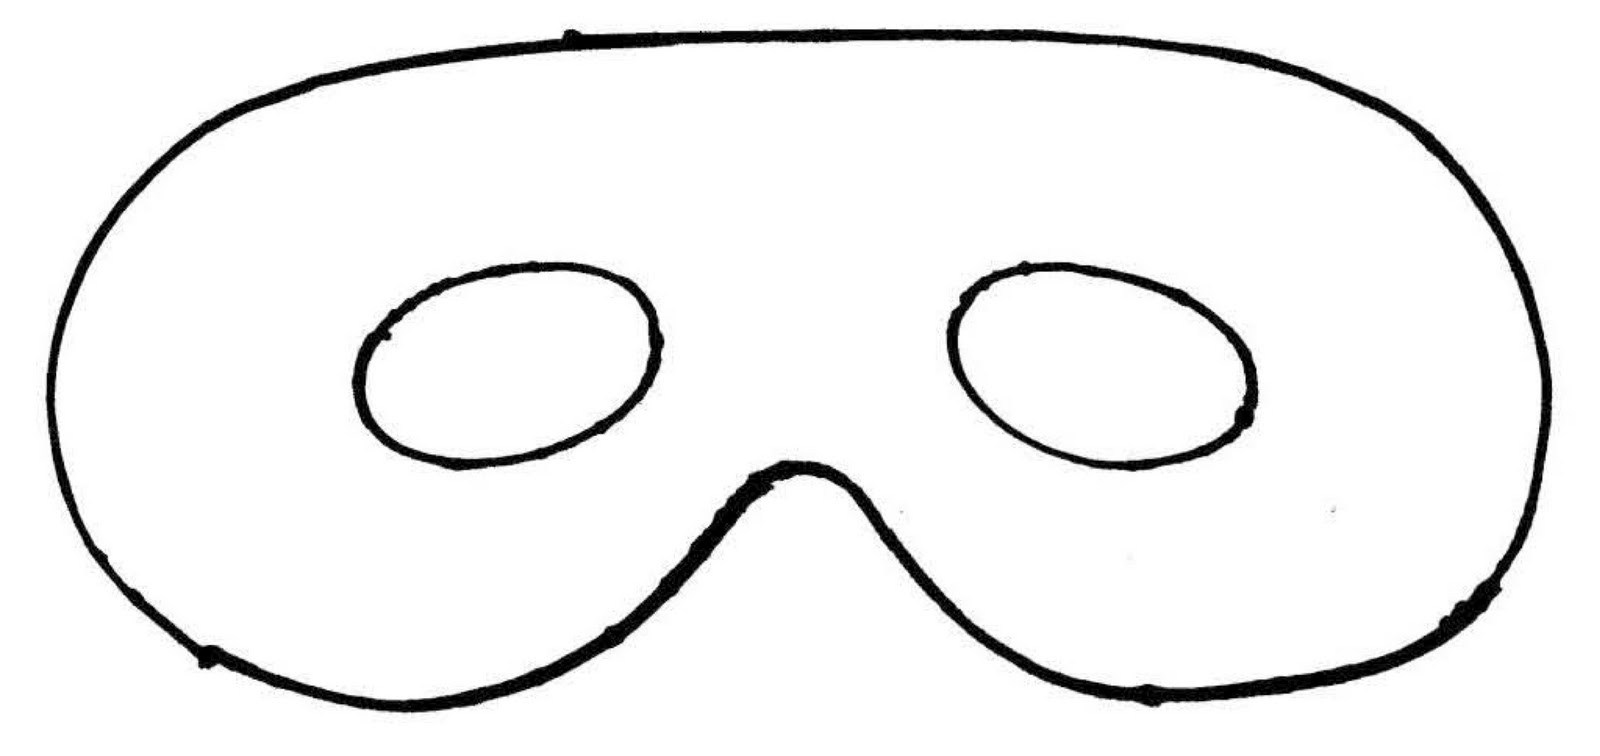 Outline Of Face Template Free Download On ClipArtMag